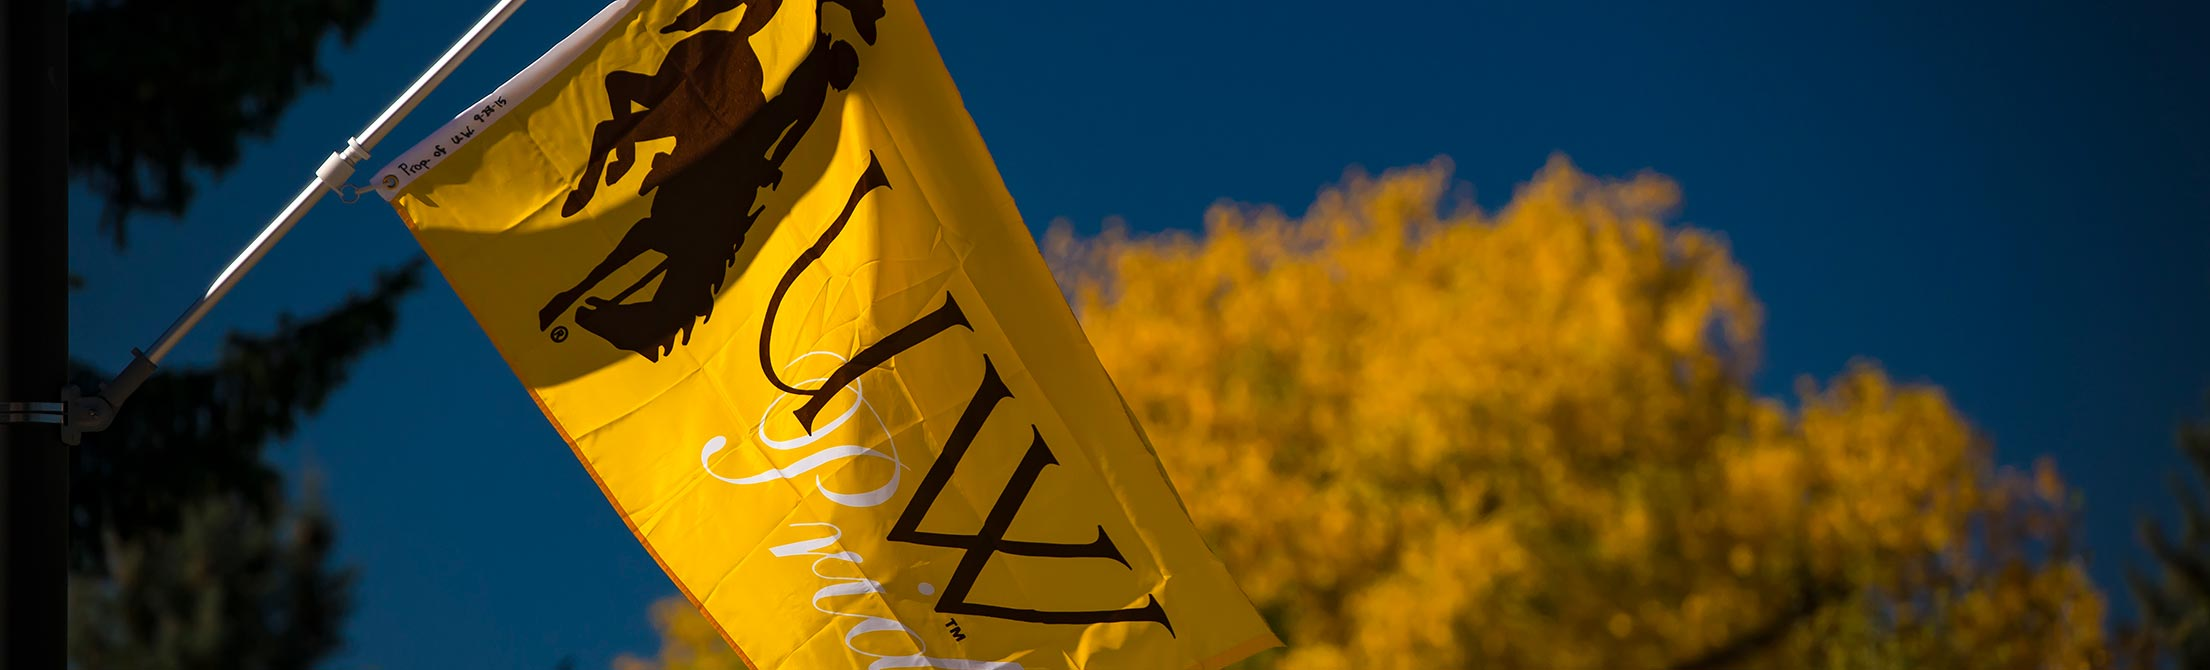 "gold flag against a blue sky. The flag reads ""UW Pride"""